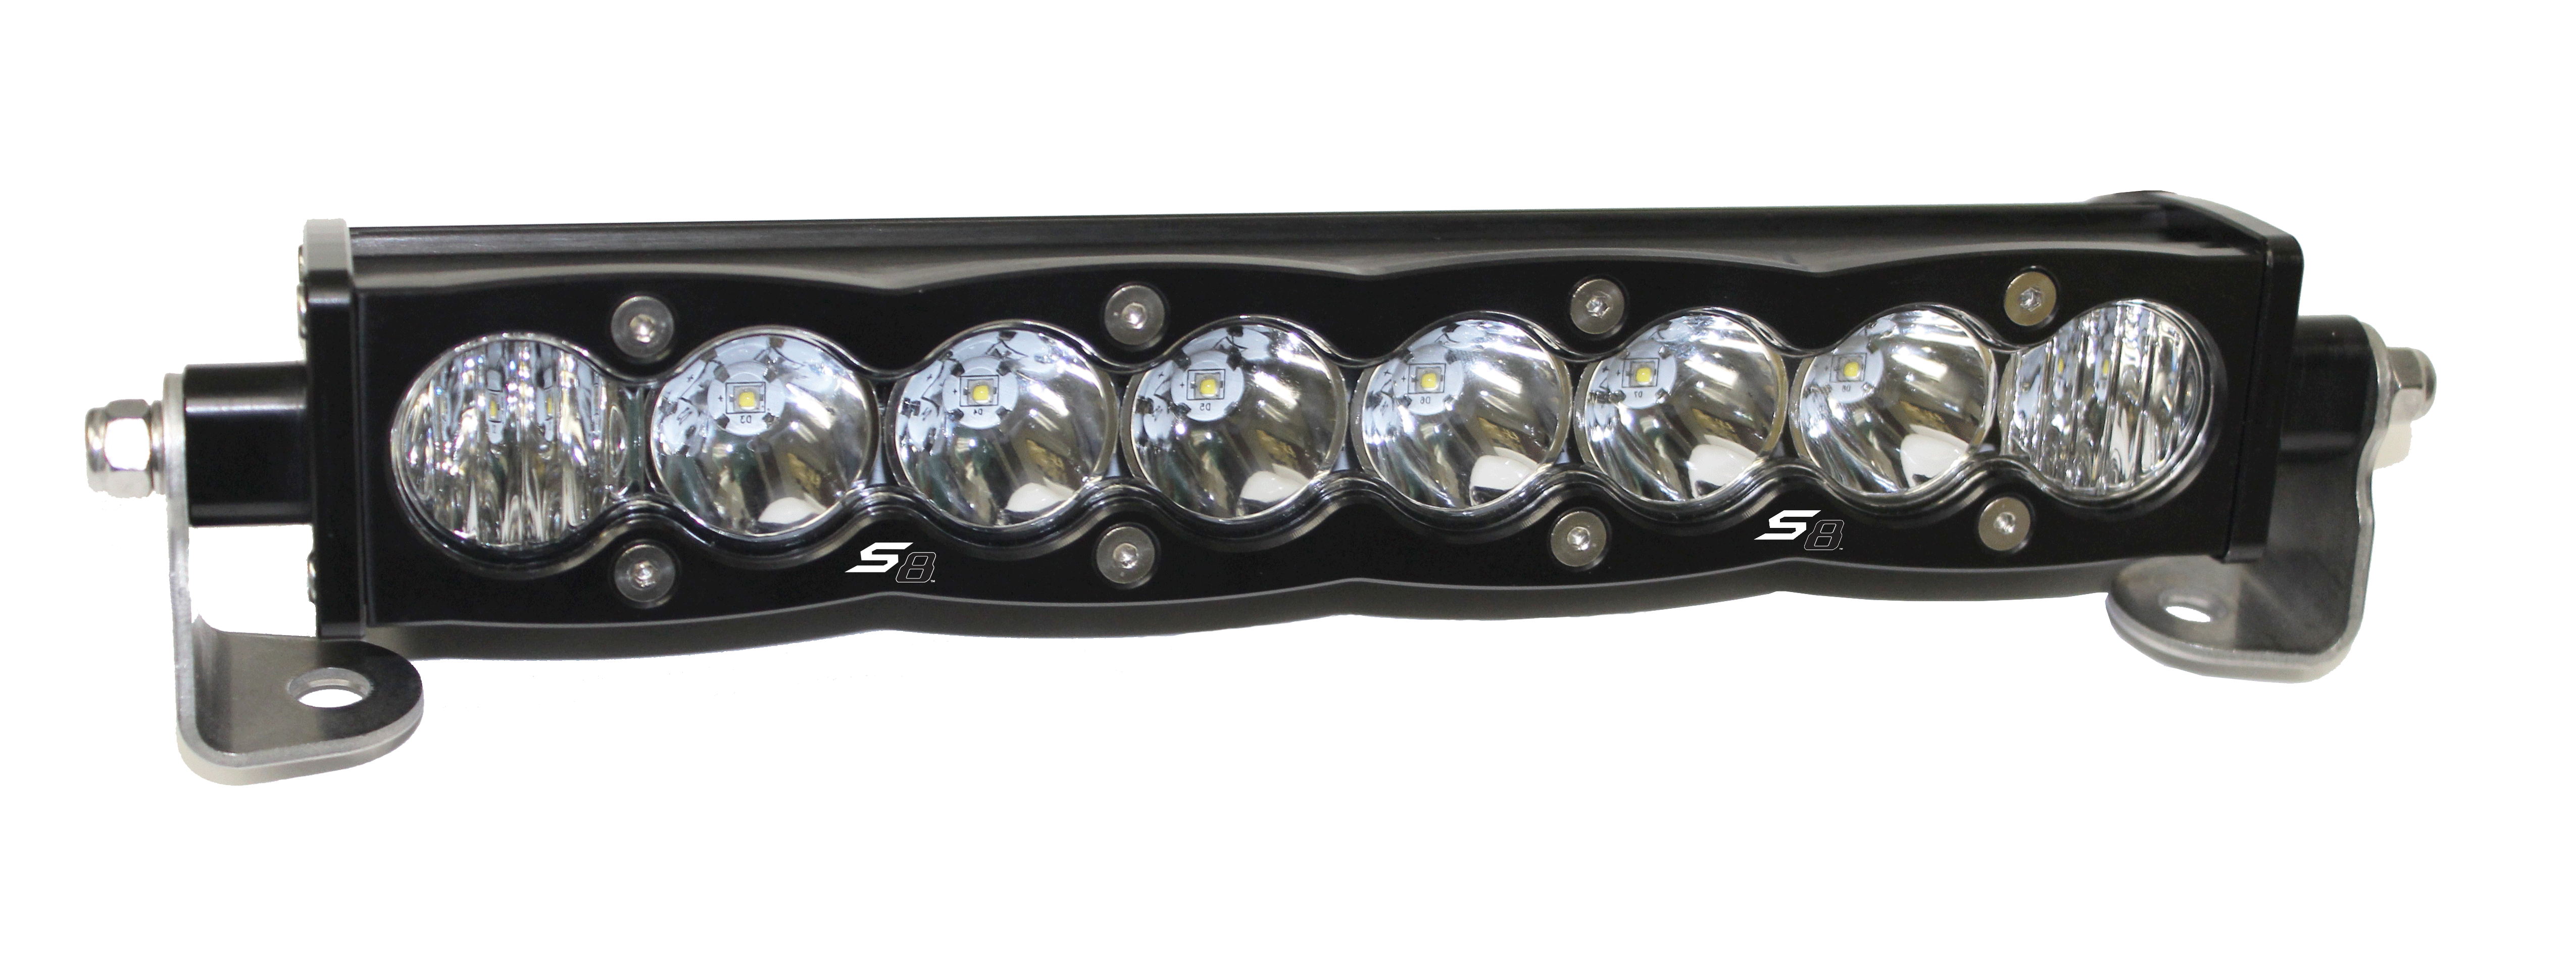 Baja designs s8 10 led light bar baja designs s8 10 led light bar mozeypictures Choice Image